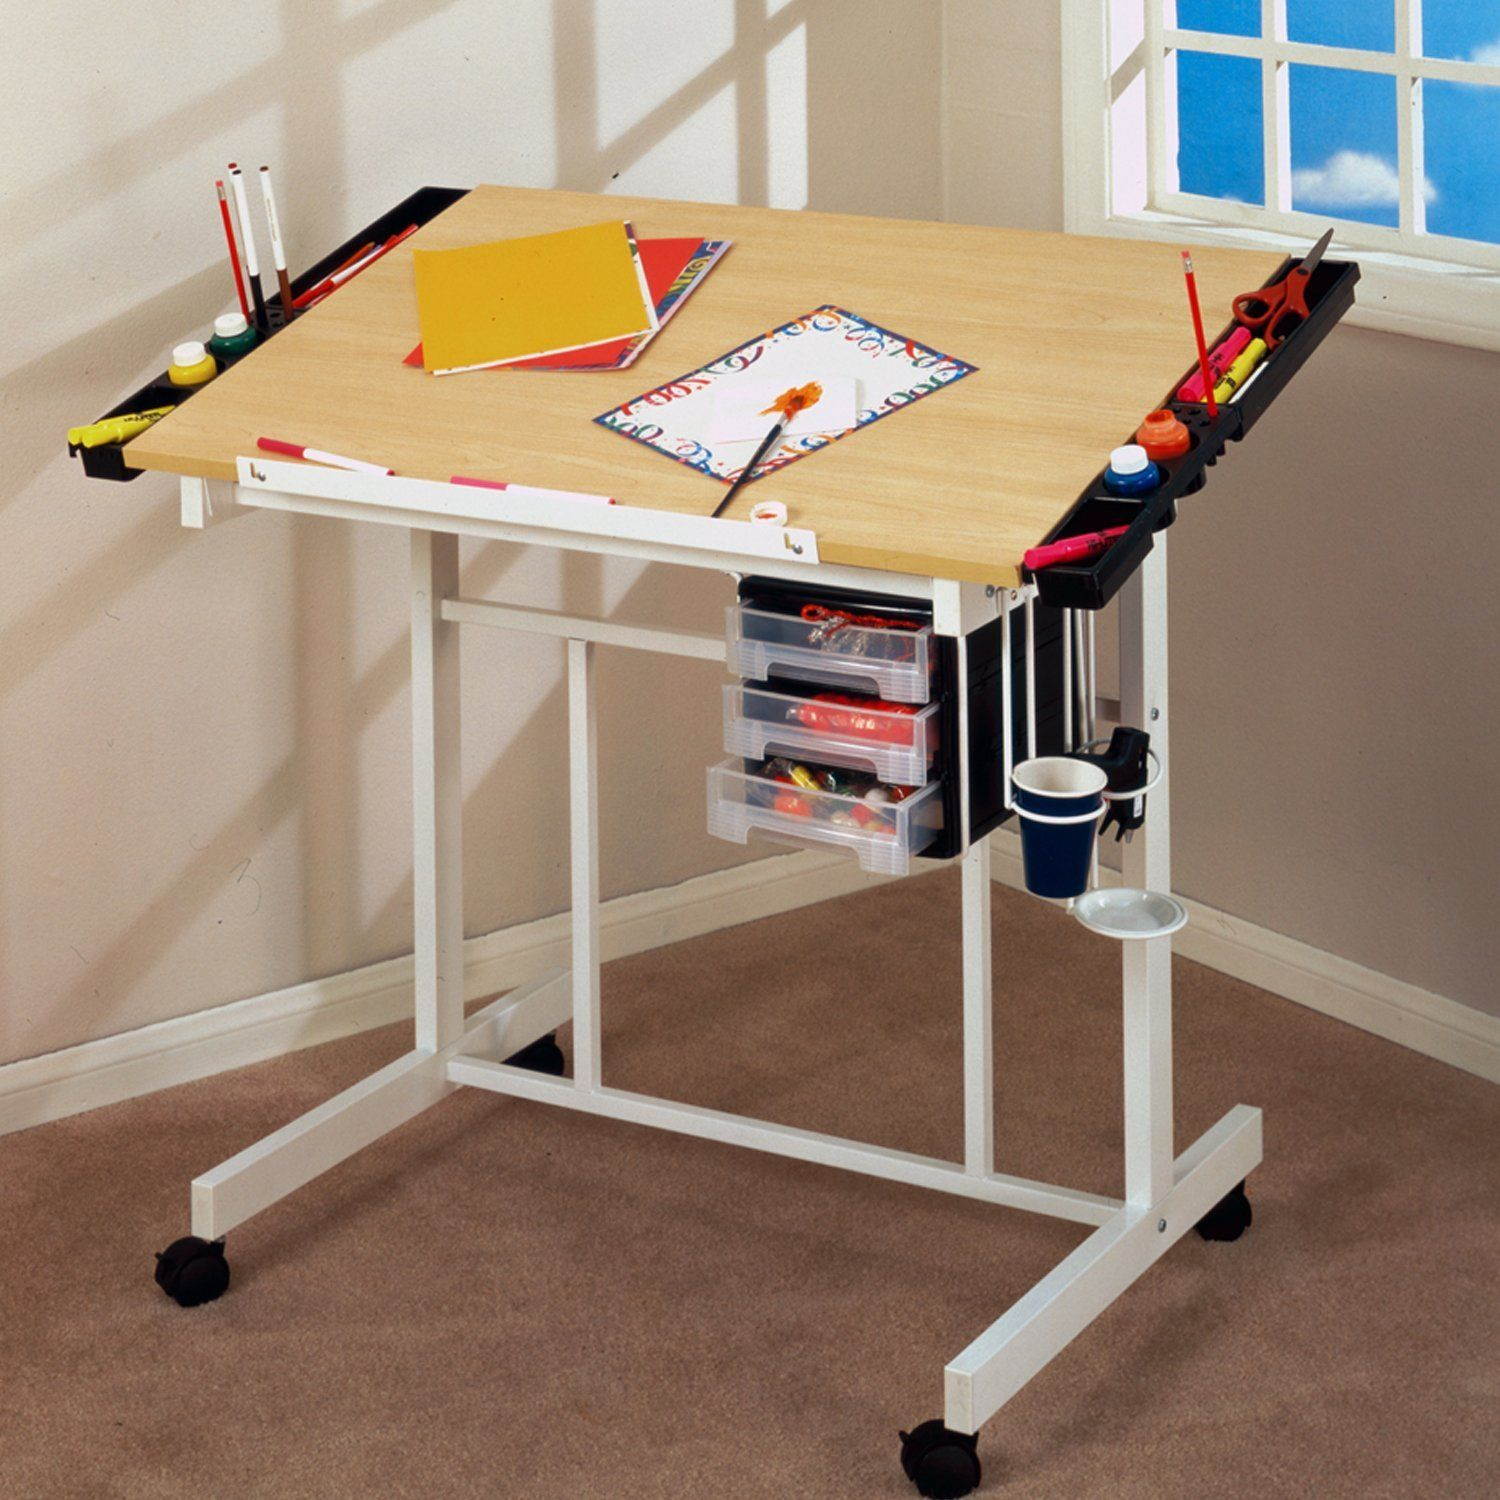 Modern drafting table - Kids Drafting Table Designs